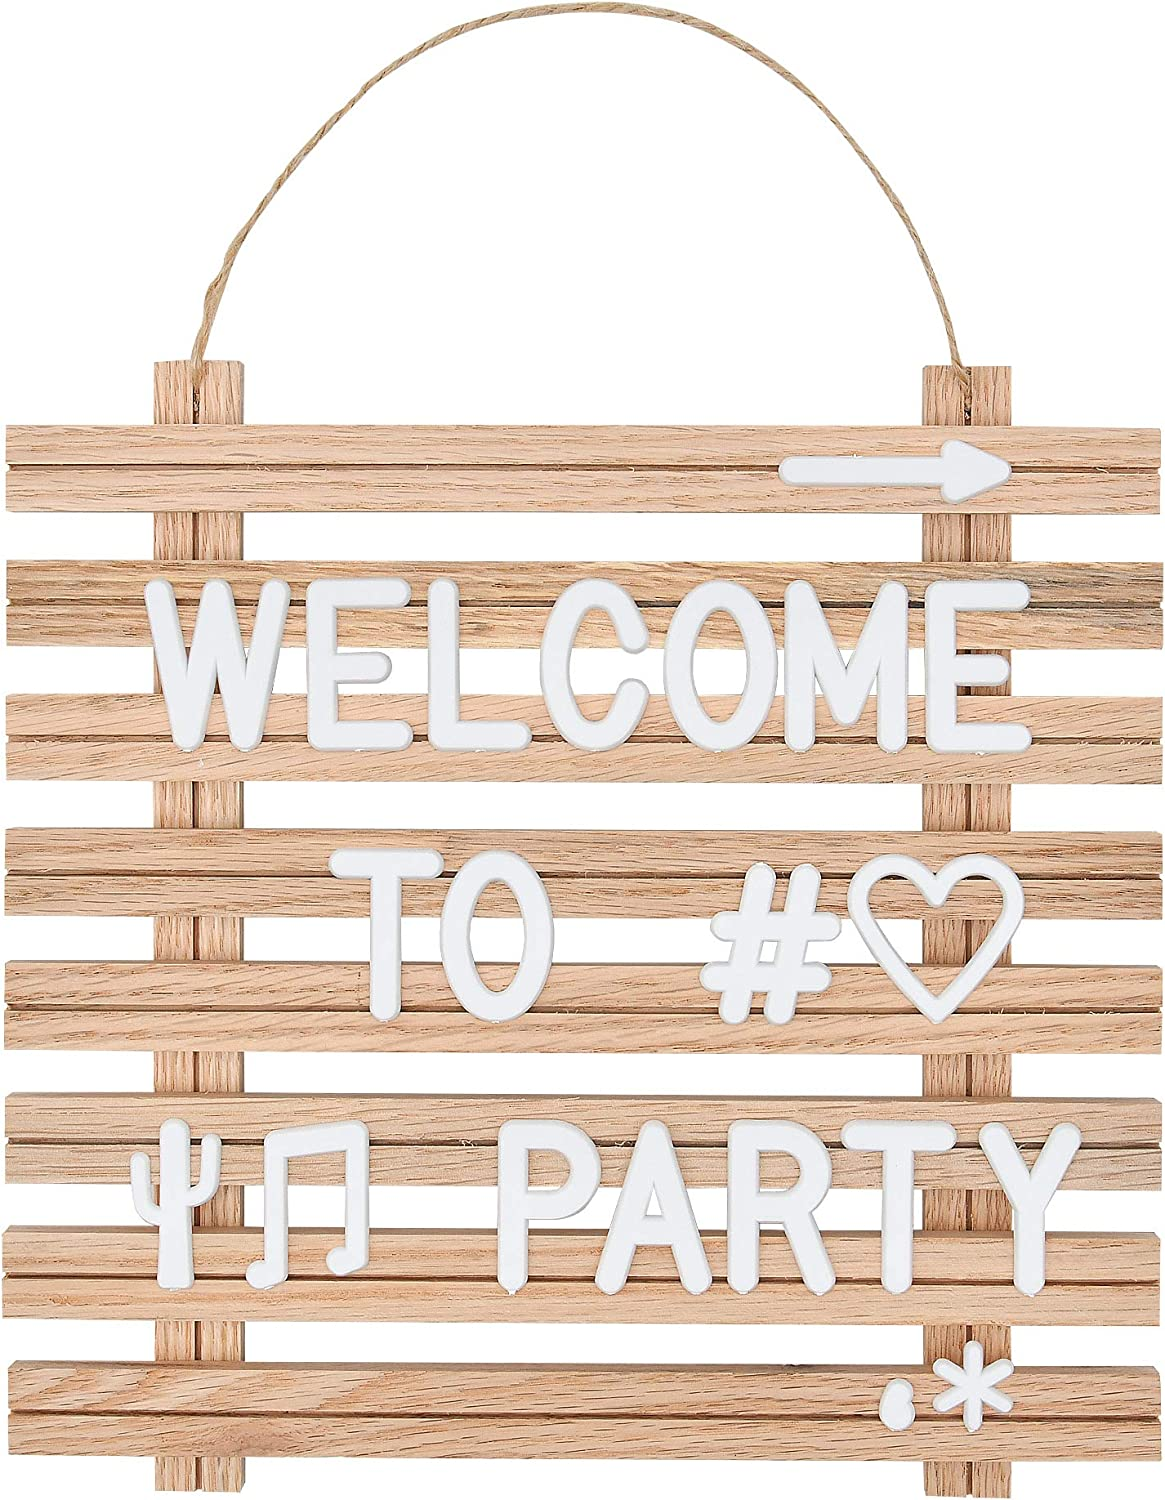 Oak Free shipping anywhere in the nation Letter Board with Cheap mail order sales 249 Letters Symbols 10 i Numbers - x